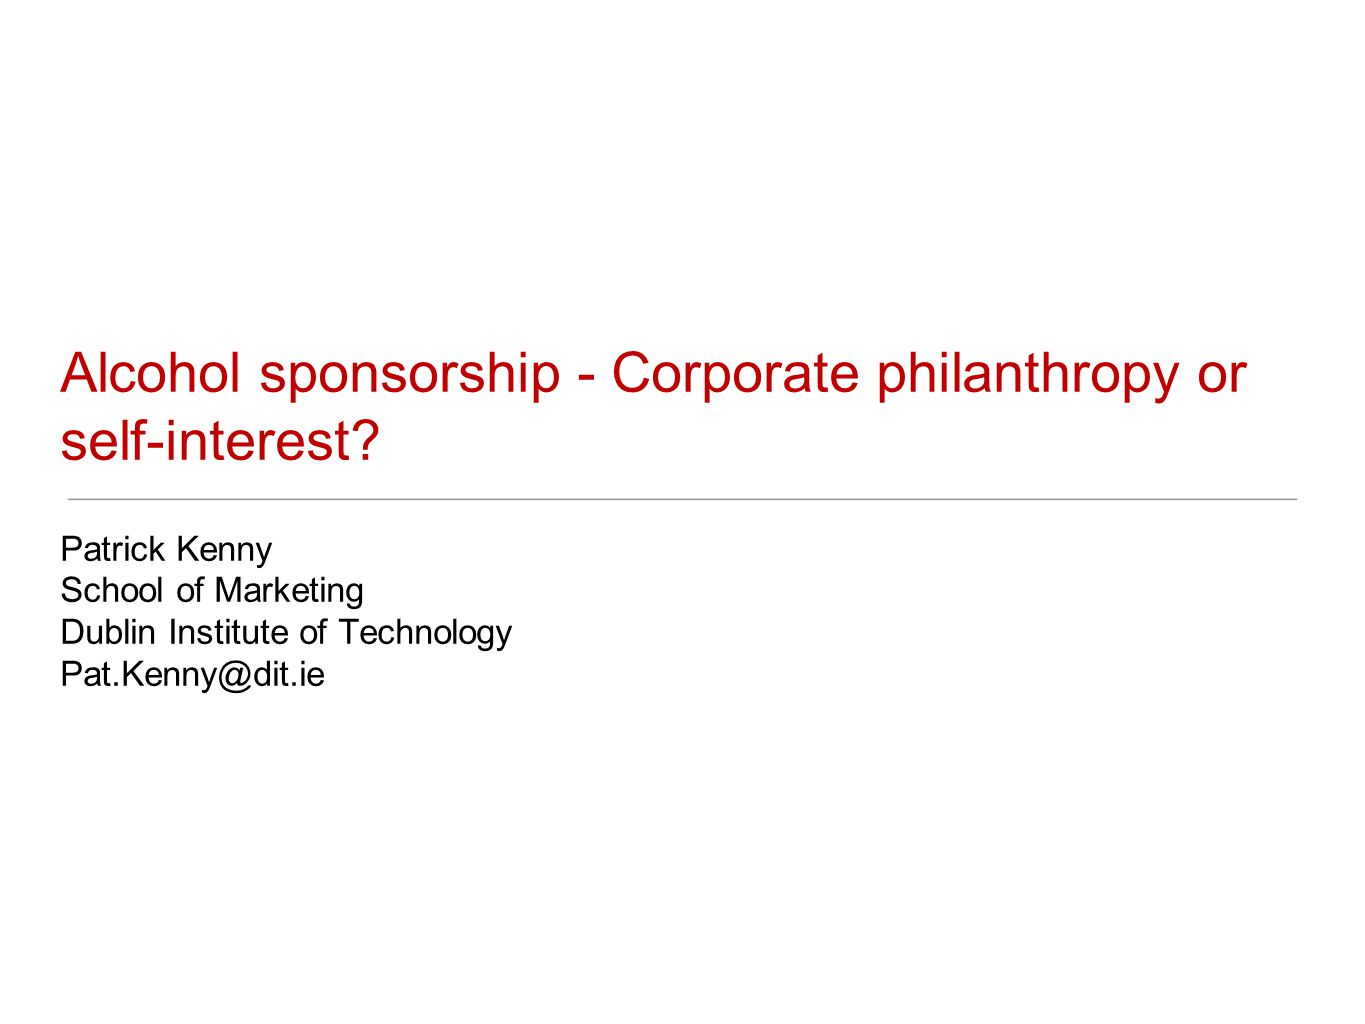 Alcohol sponsorship - Corporate philanthropy or self-interest? Patrick Kenny School of Marketing Dublin Institute of Technology Pat.Kenny@dit.ie